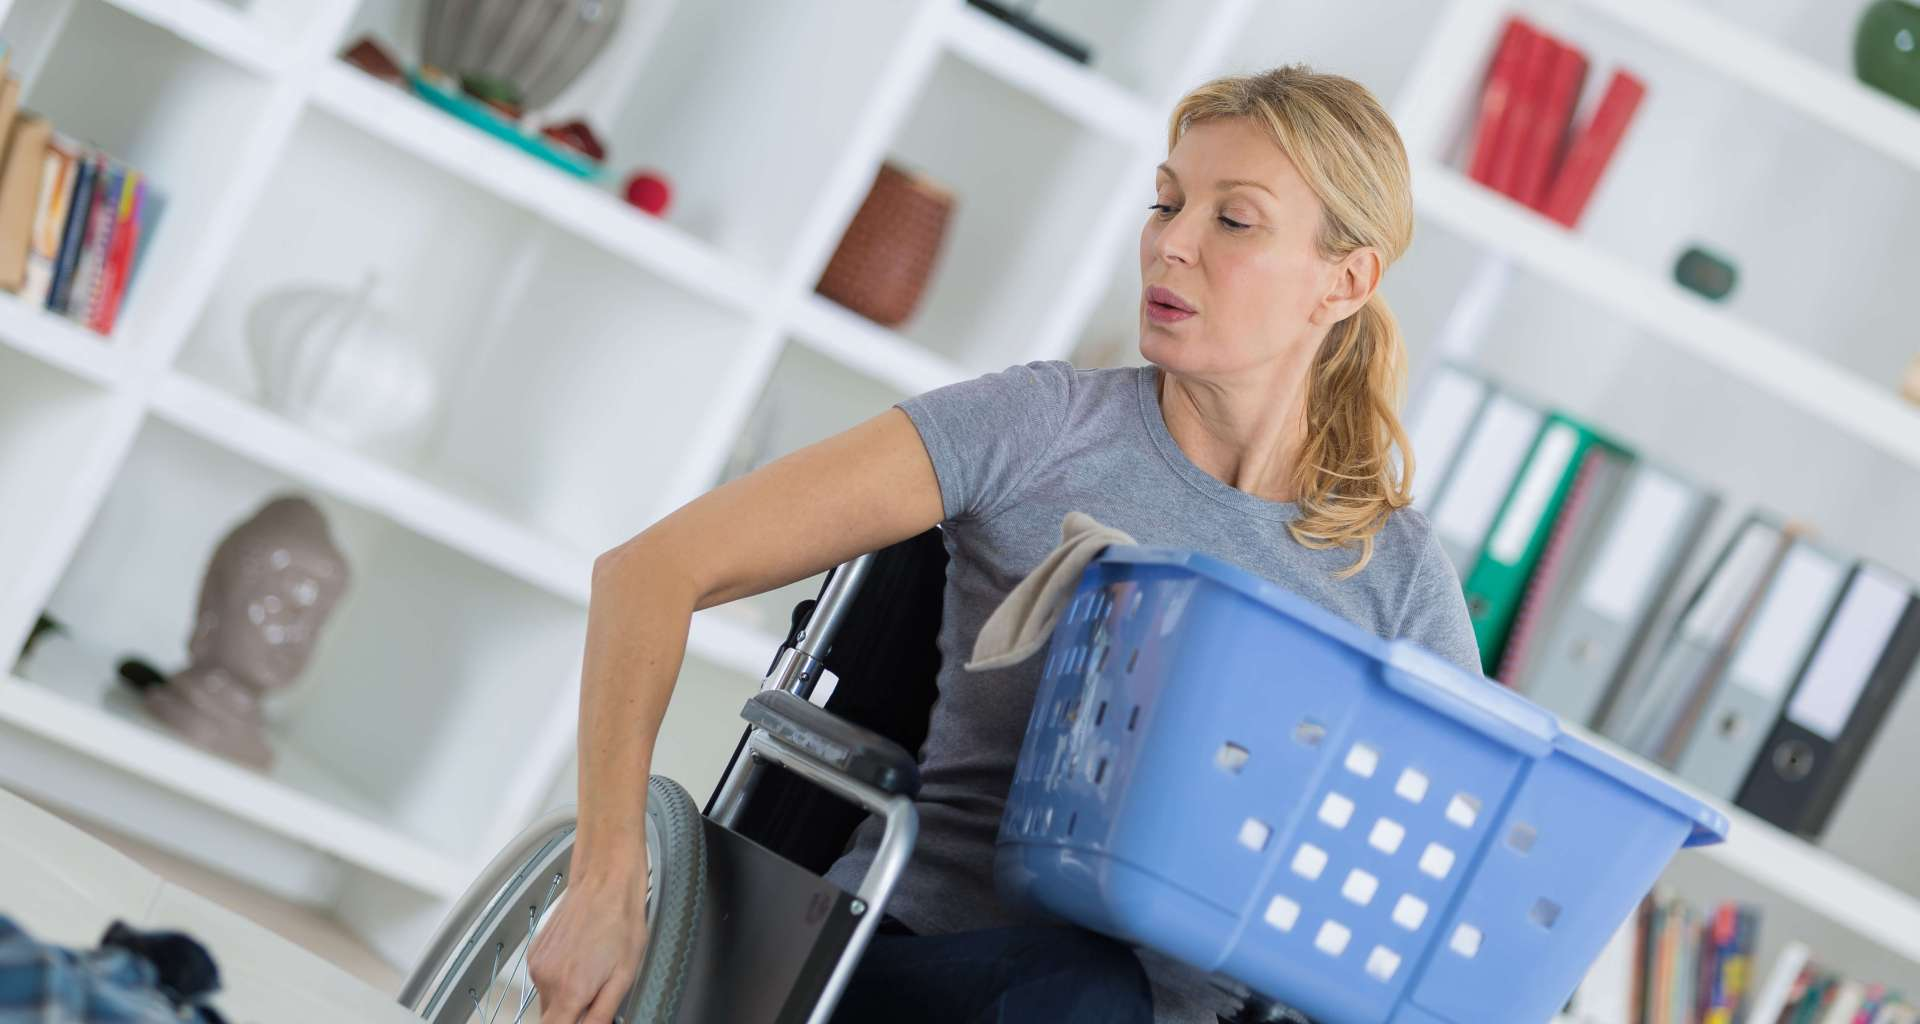 Blonde woman in wheelchair carrying a laundry basket